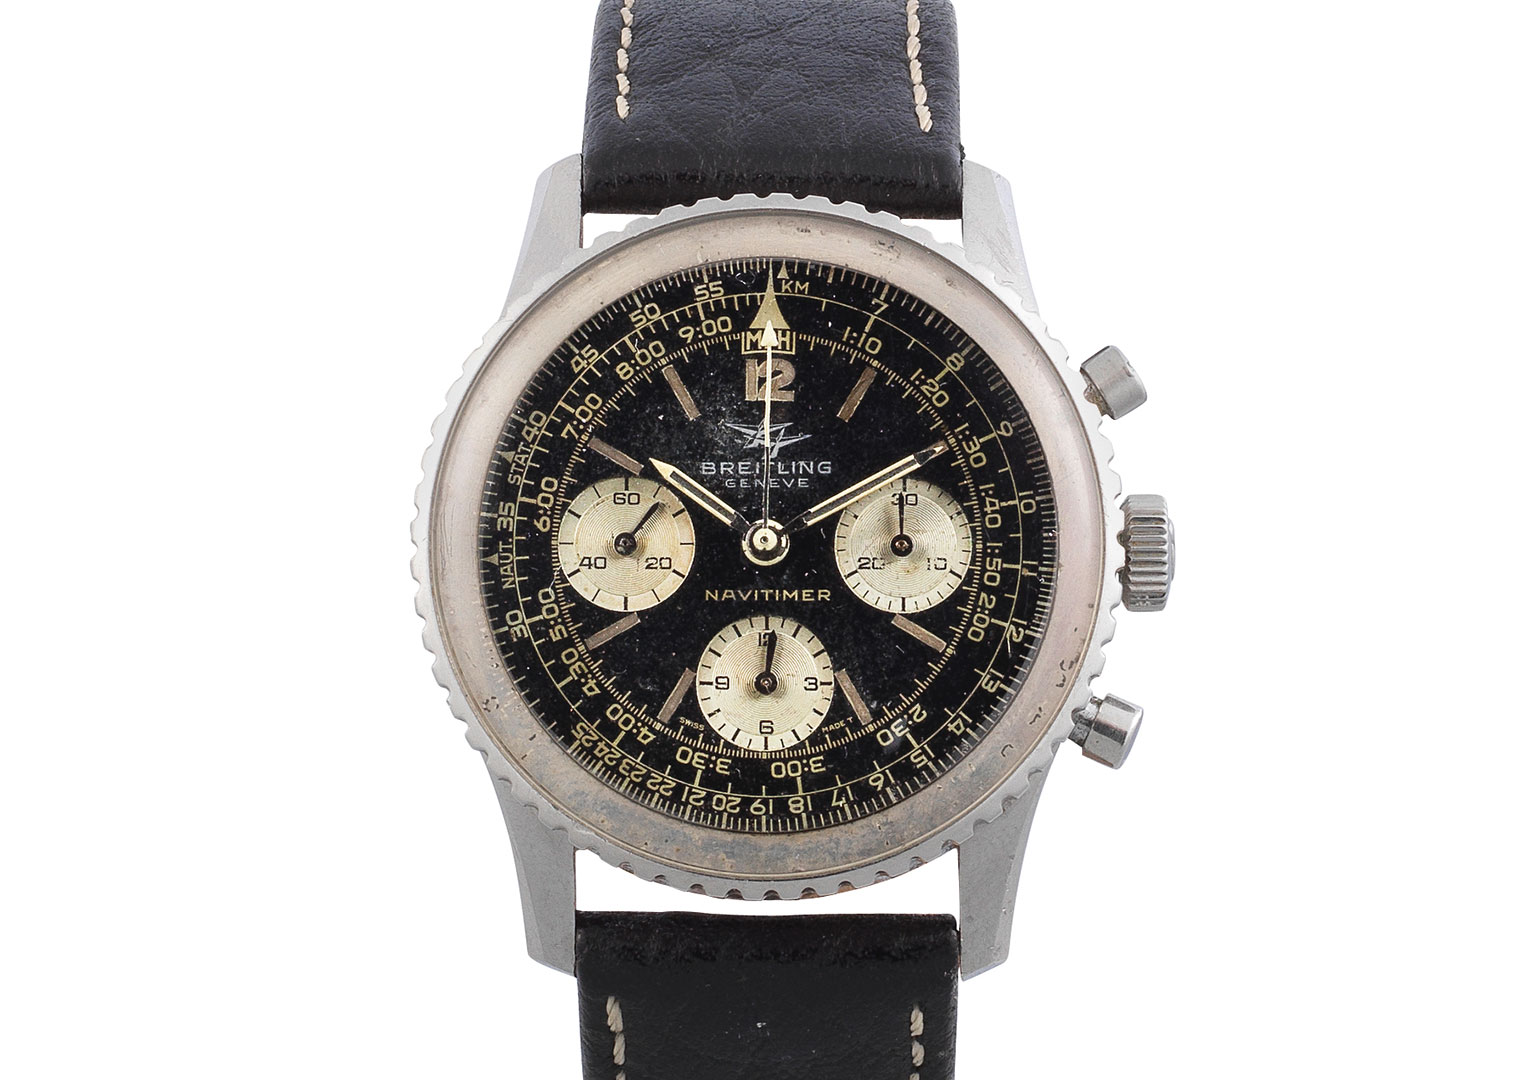 Also seen in Thunderball is a Breitling Navitimer Reference 308